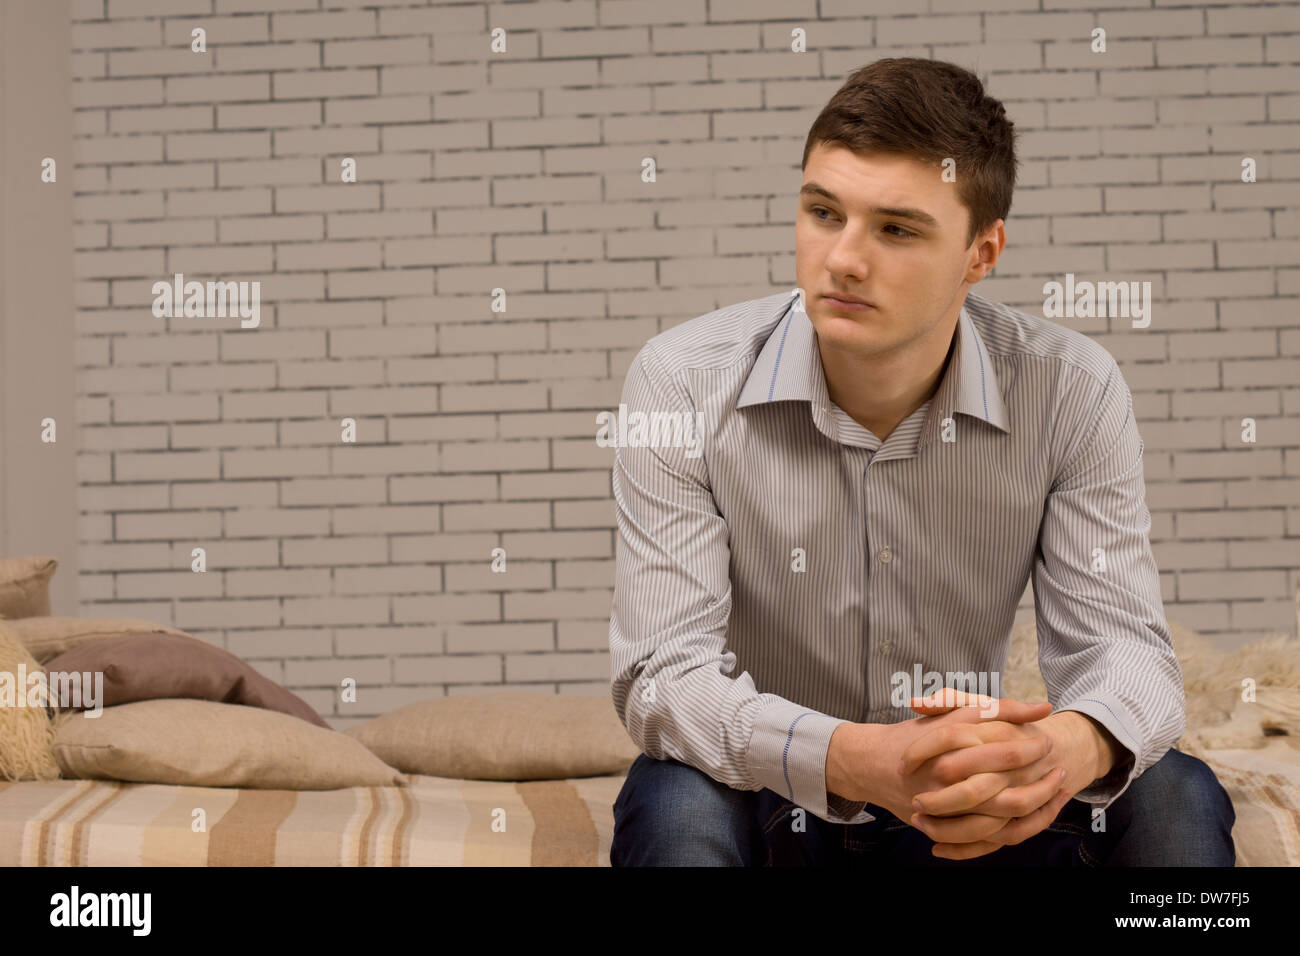 Young man sitting on a sofa thinking - Stock Image